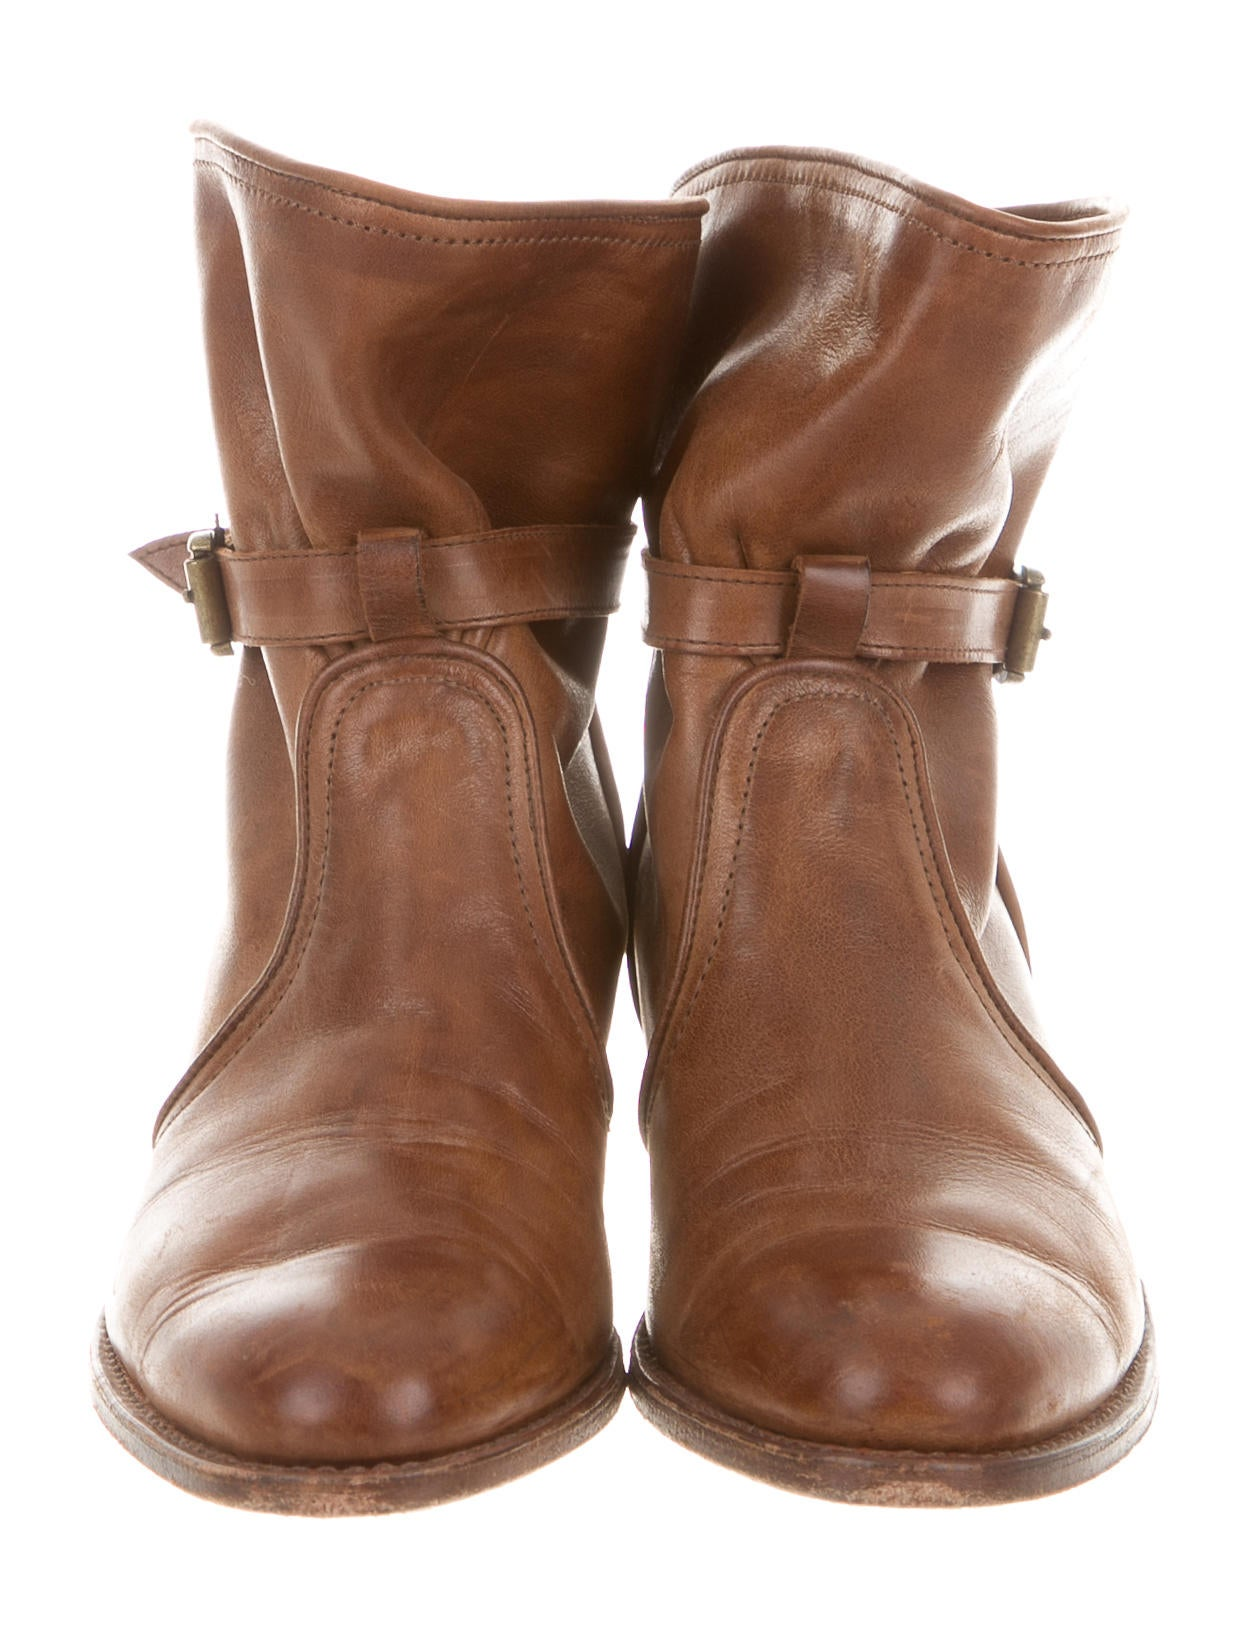 frye leather toe ankle boots shoes wf820822